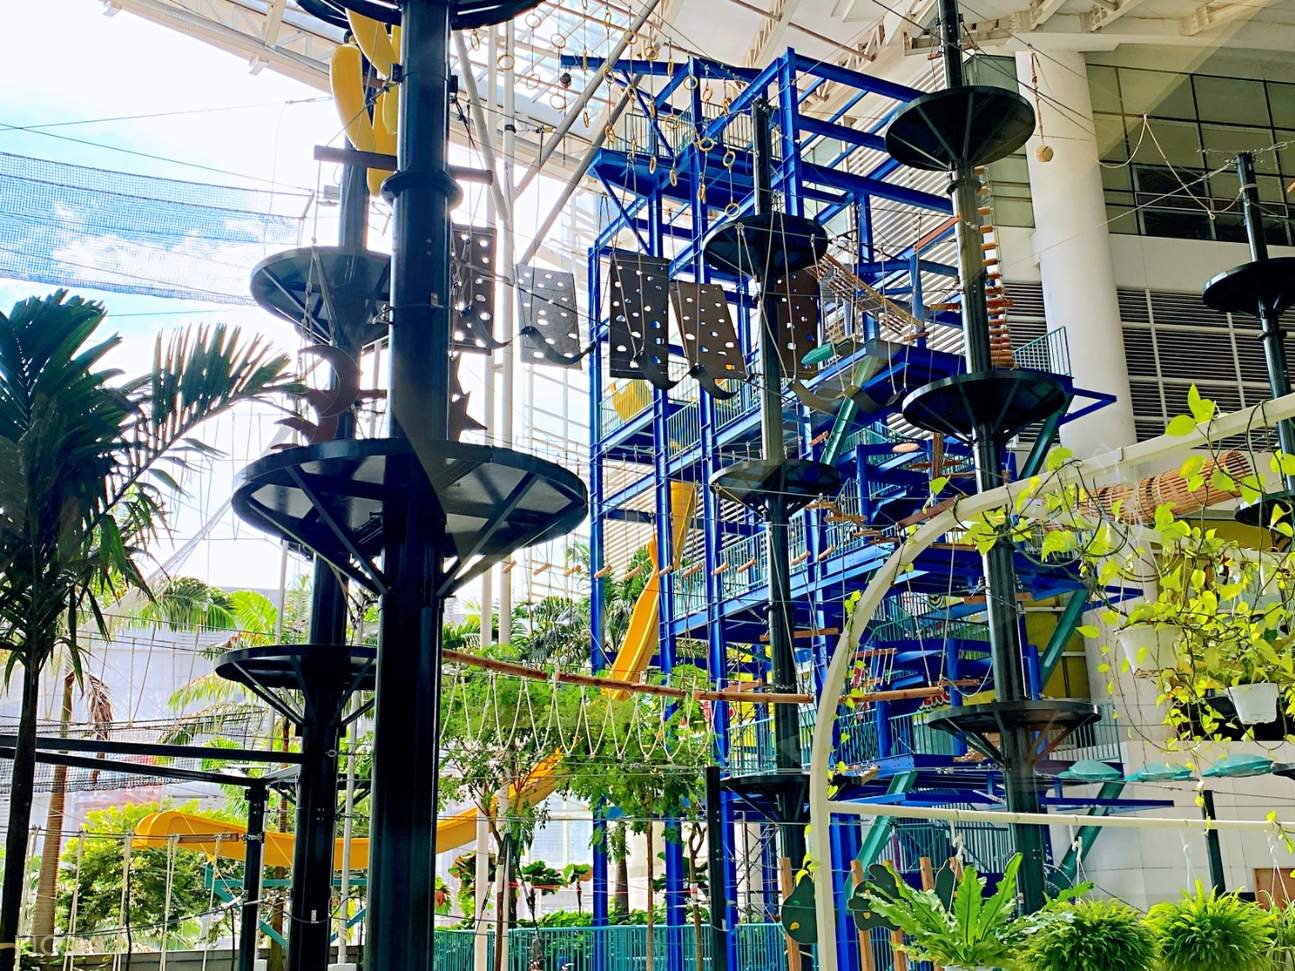 More than 50 types of different challenges and fun rides for you to try out